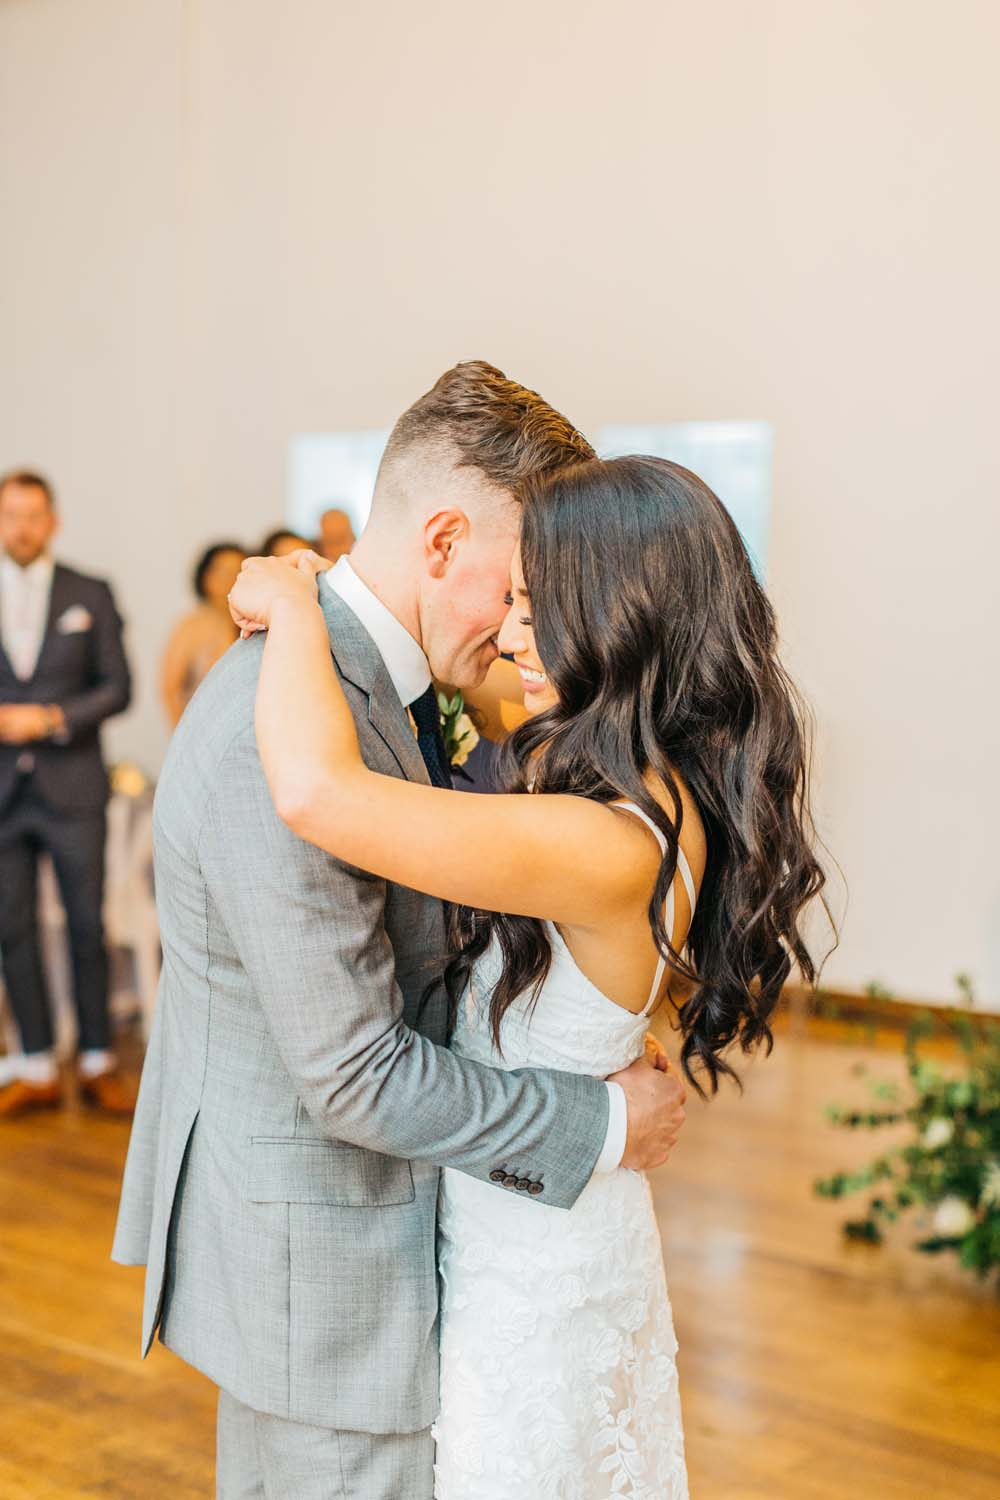 A Bright and Airy September Wedding in Toronto, Ontario - First Dance